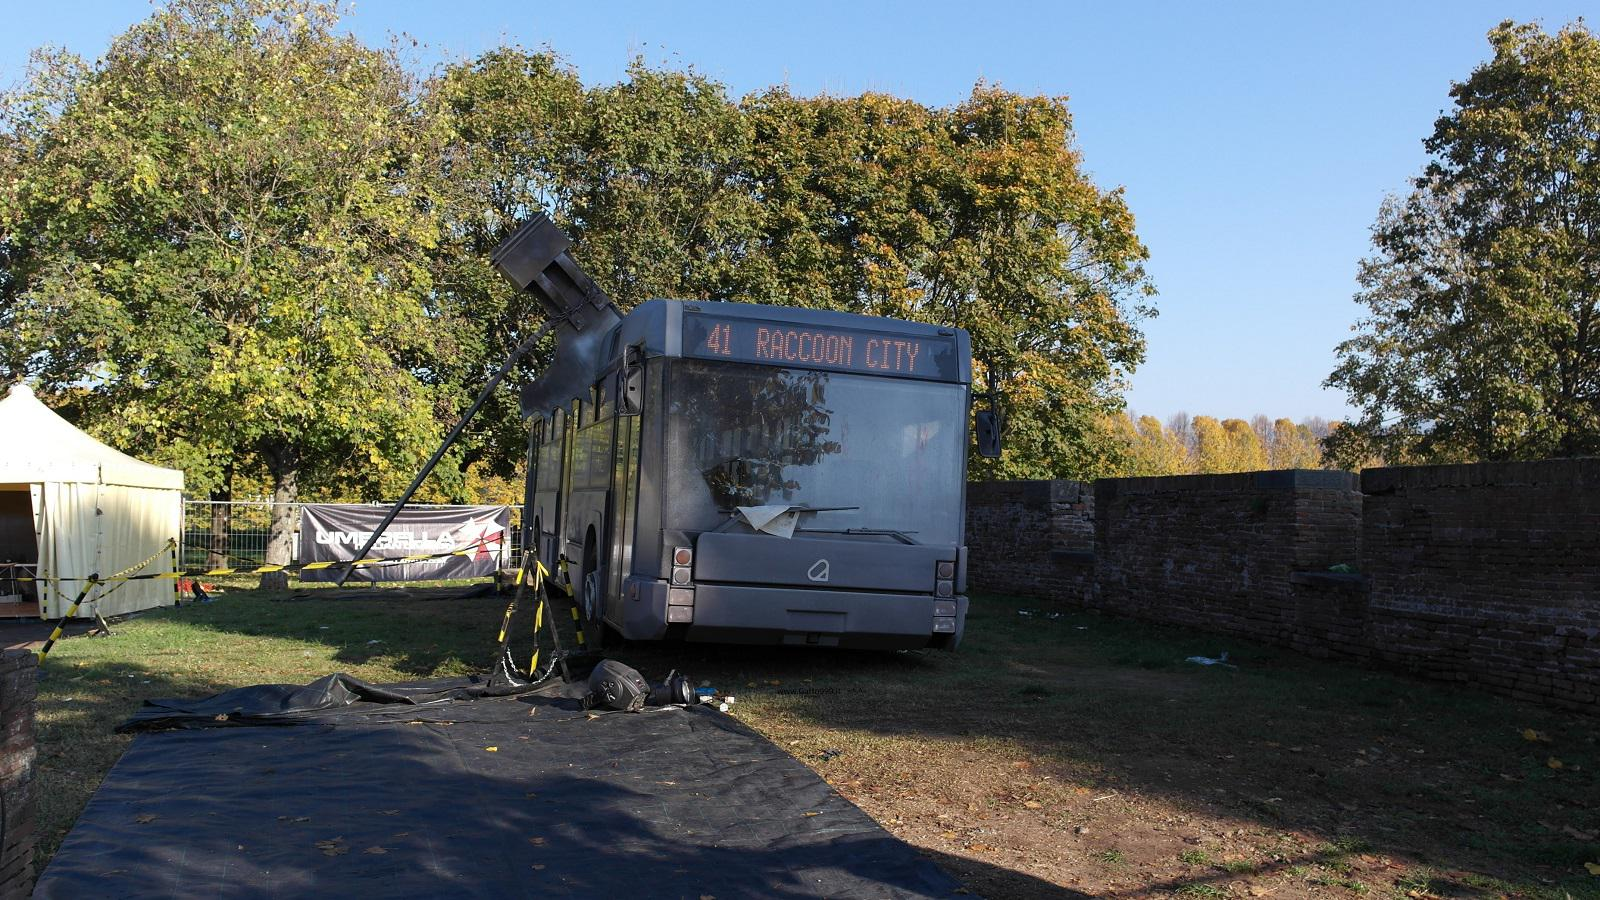 Lucca Comics and Games 2015 - autobus distrutto in una battaglia di Resident Evil